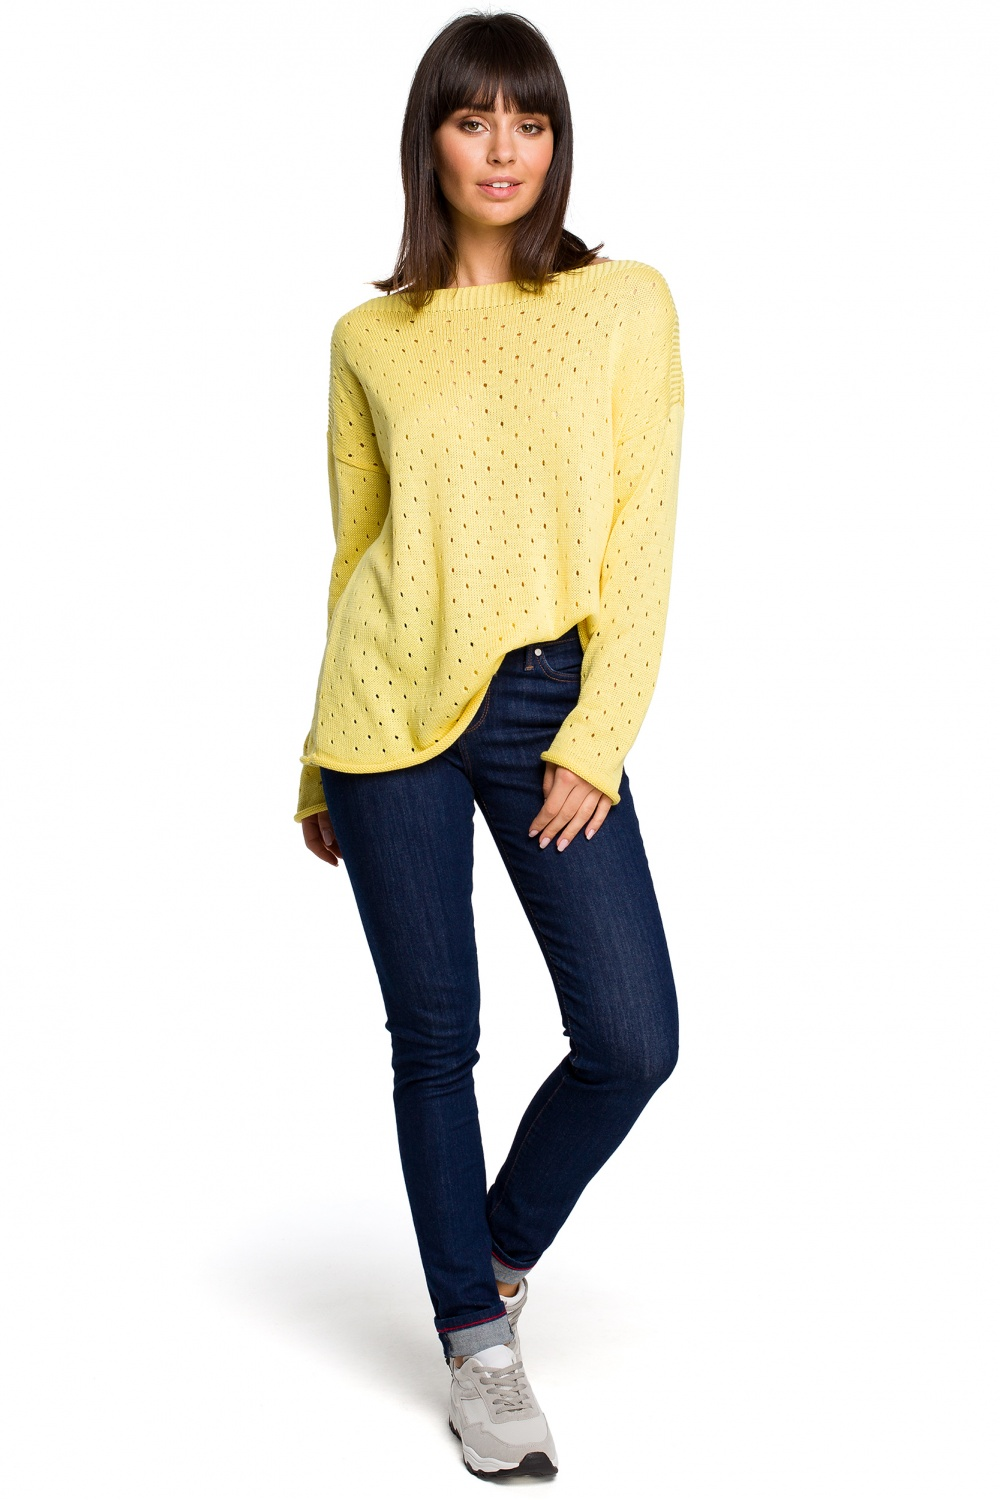 Pulover model 129164 BE Knit